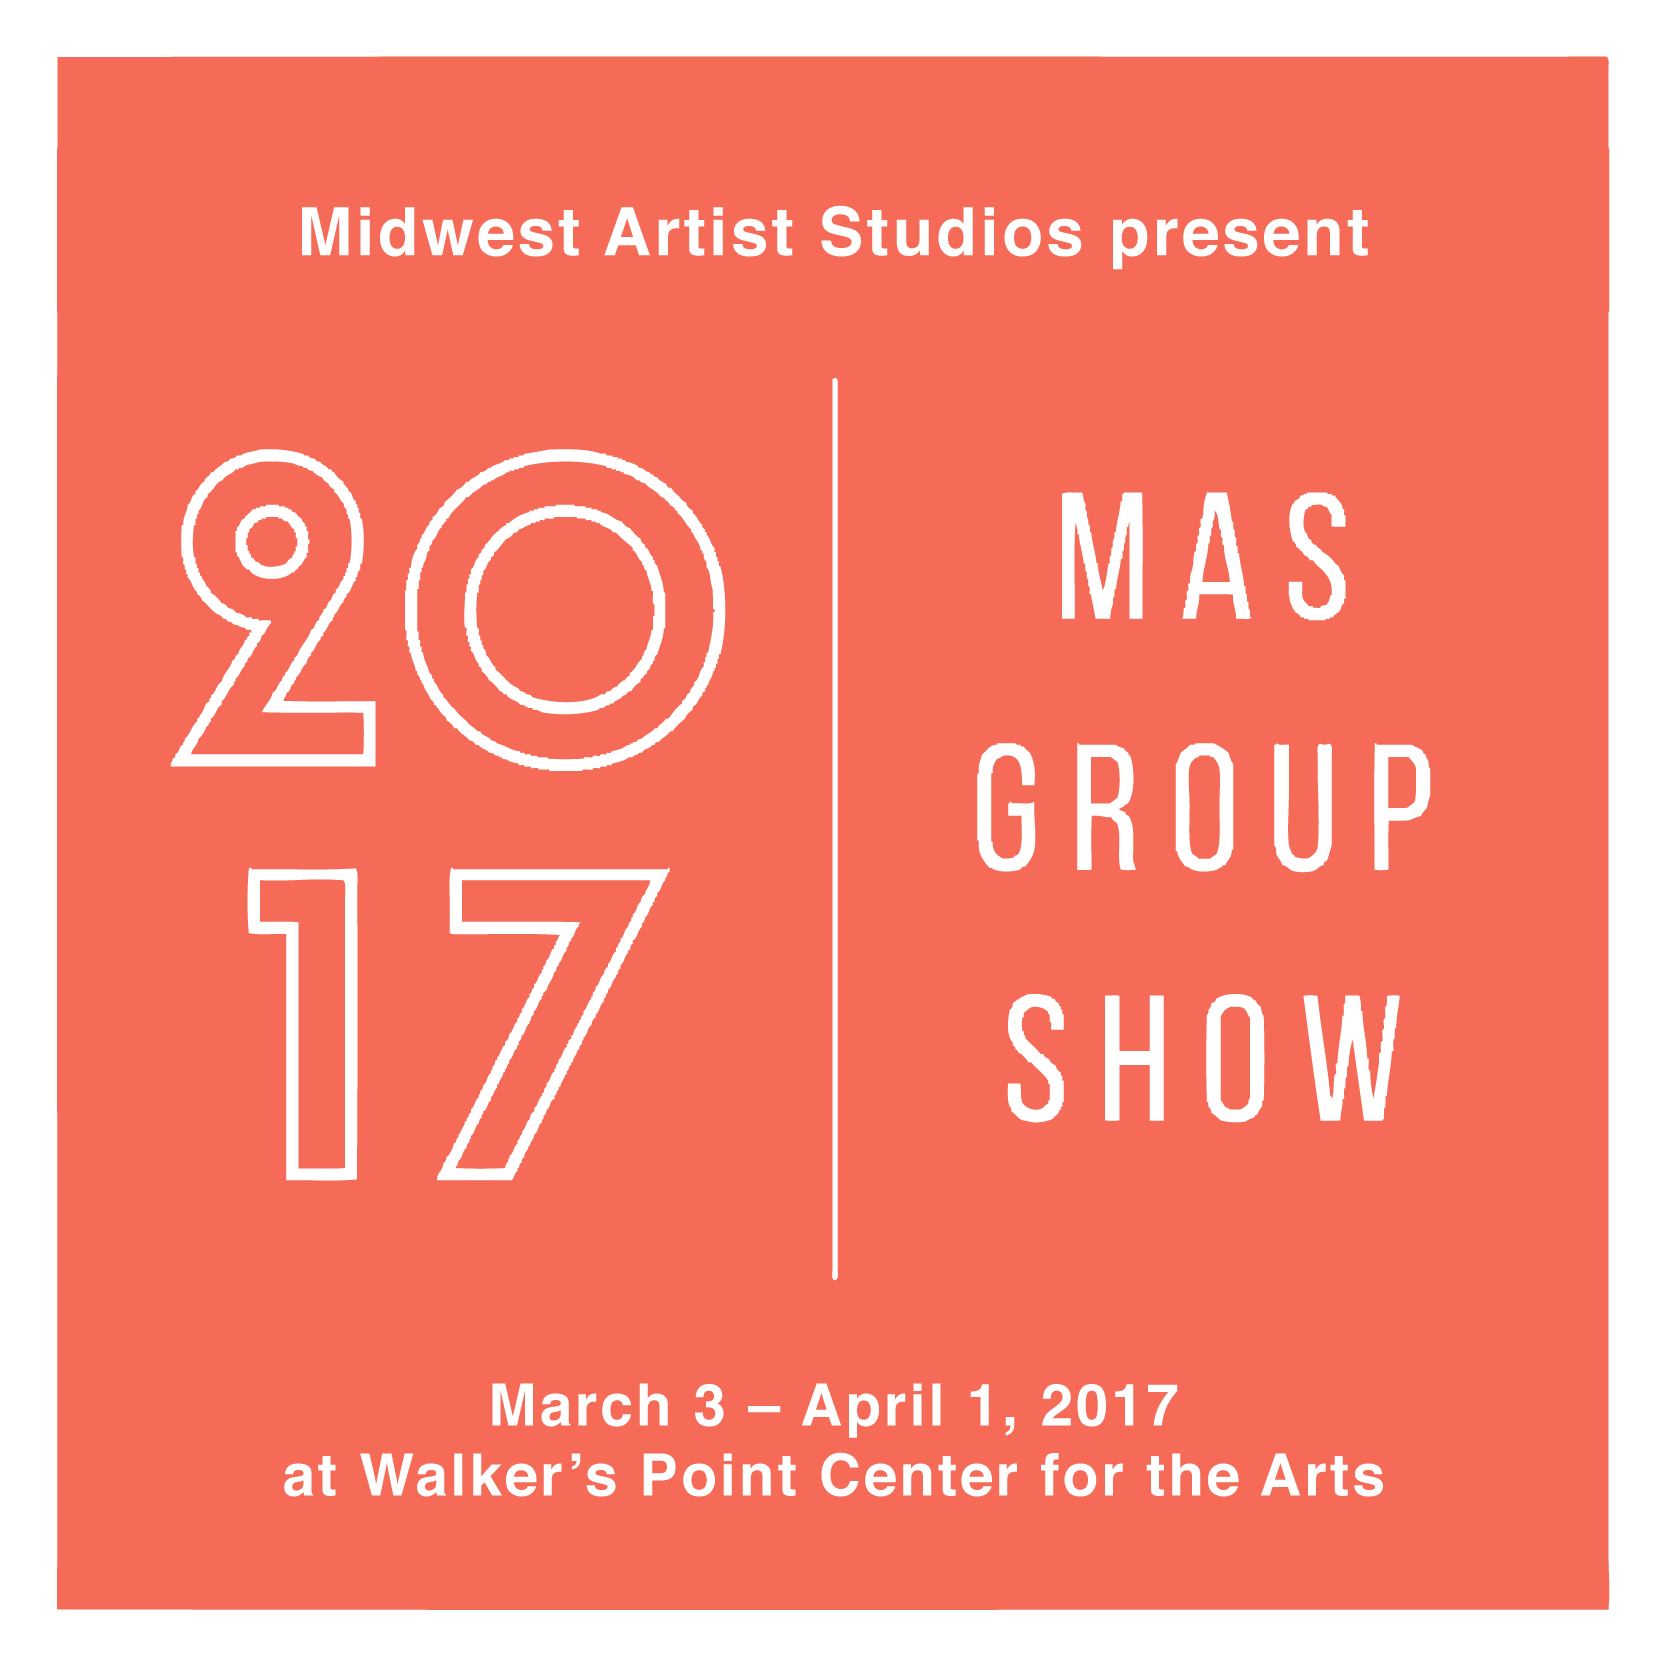 Exhibition: MAS Group Show